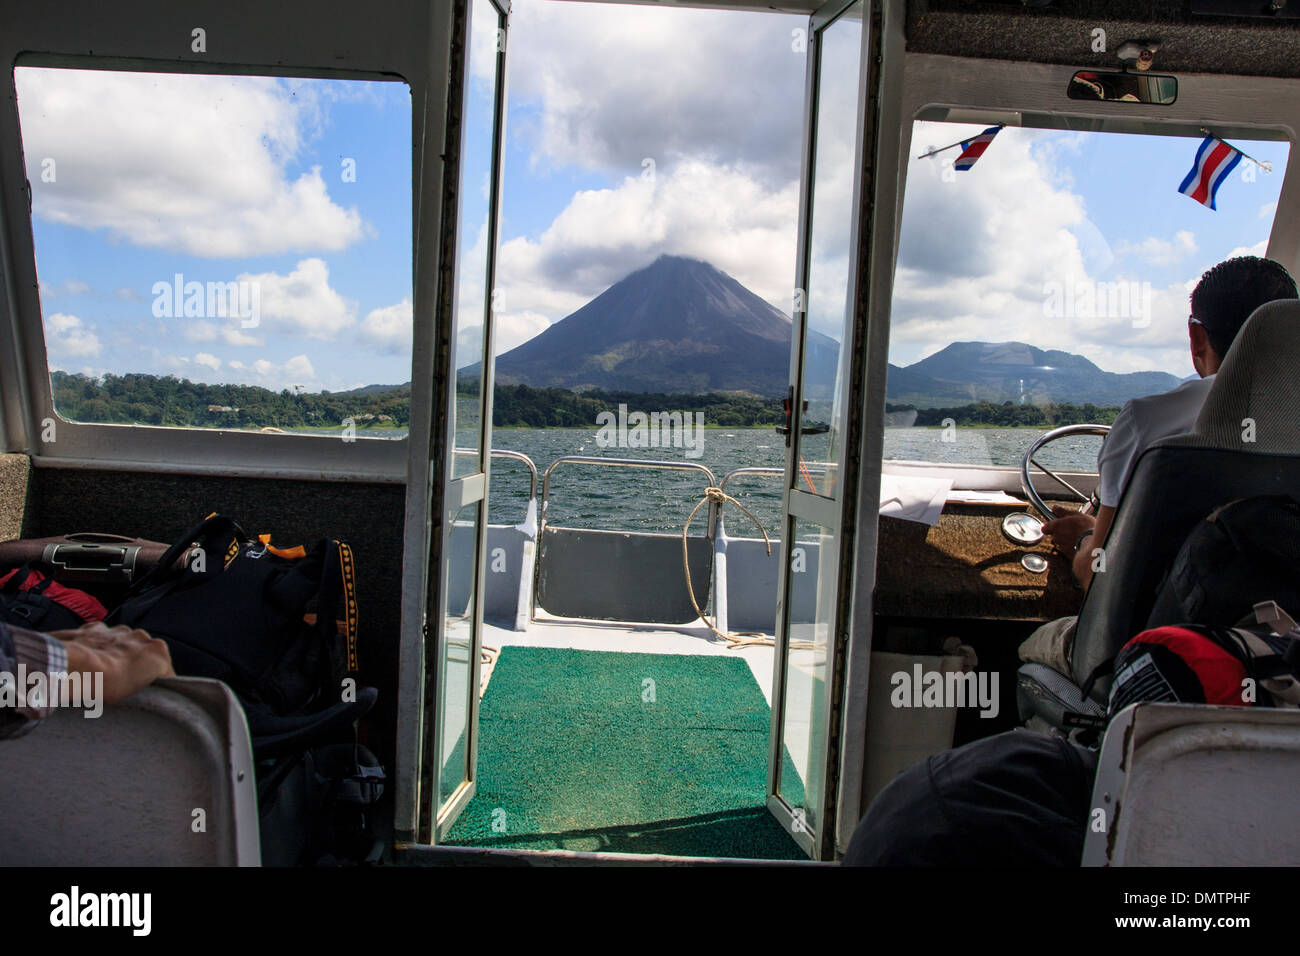 View of Arenal Volcano from lake Arenal, Costa Rica. - Stock Image